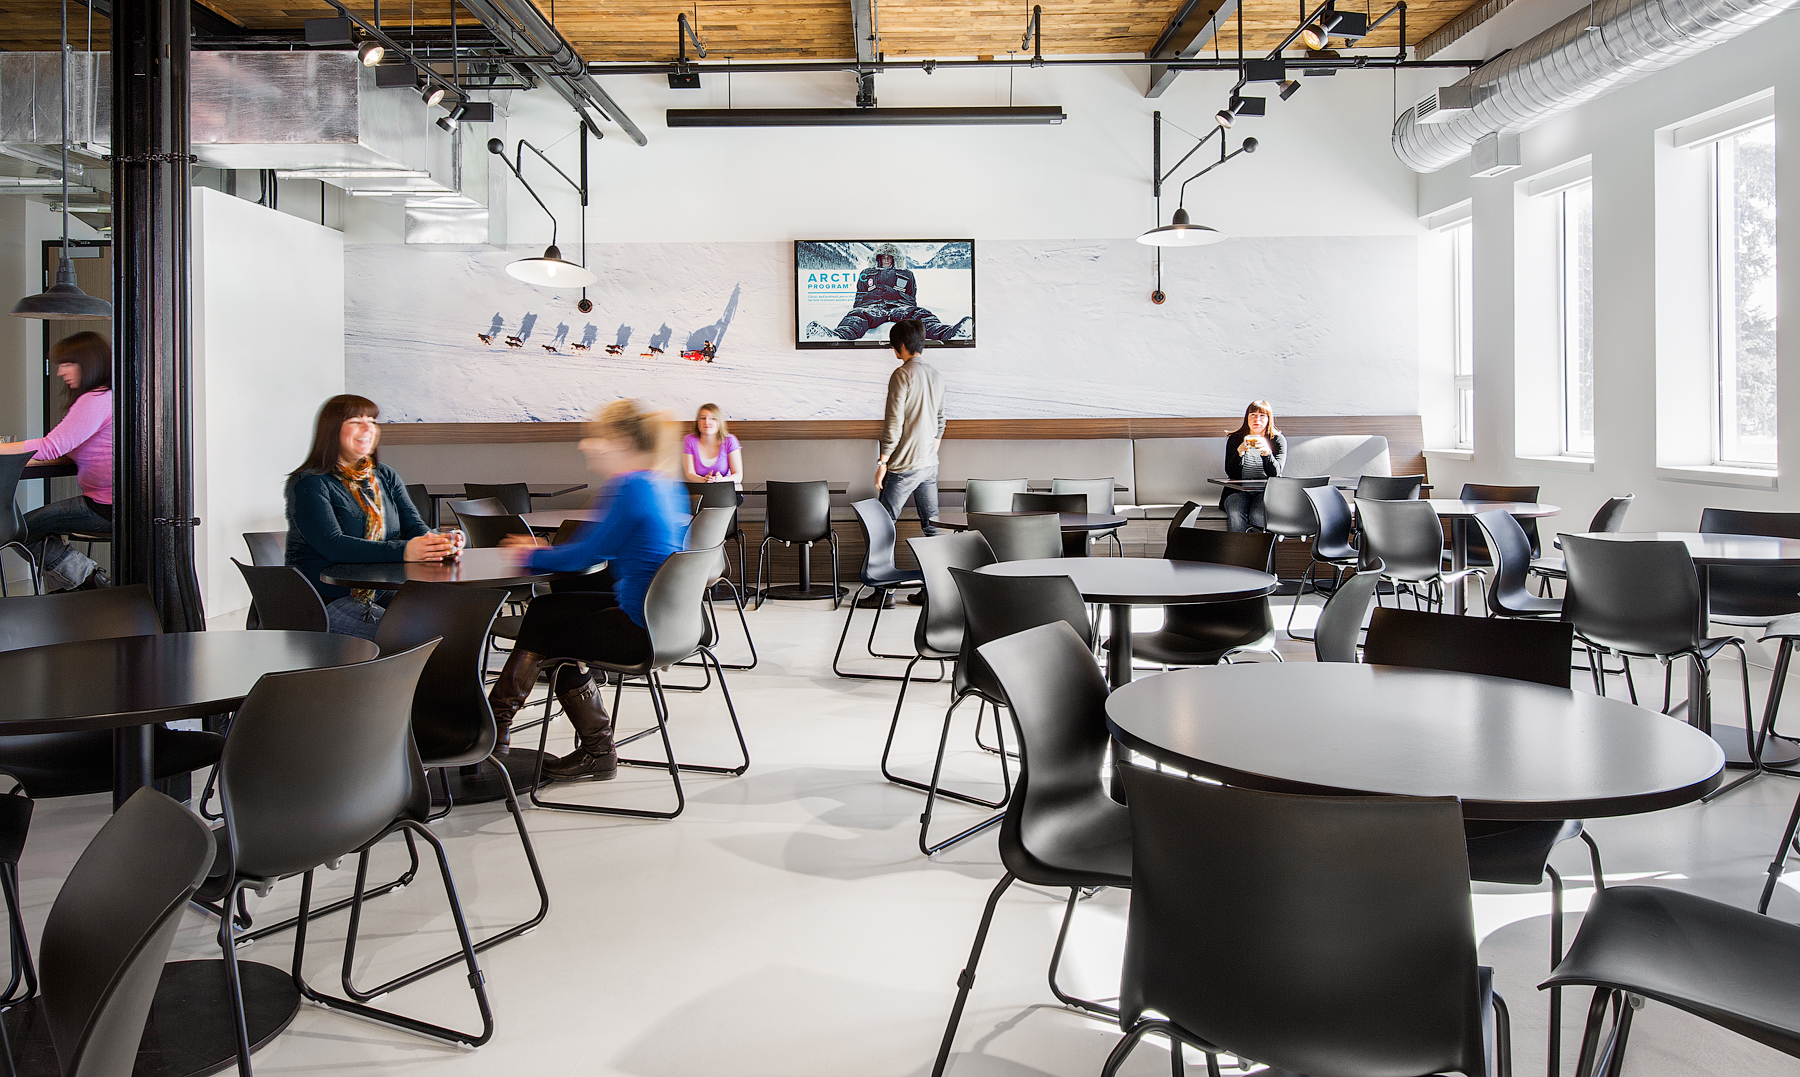 Canada Goose lunchroom with white walls, industrial lighting, open ceiling, and black tables and chairs